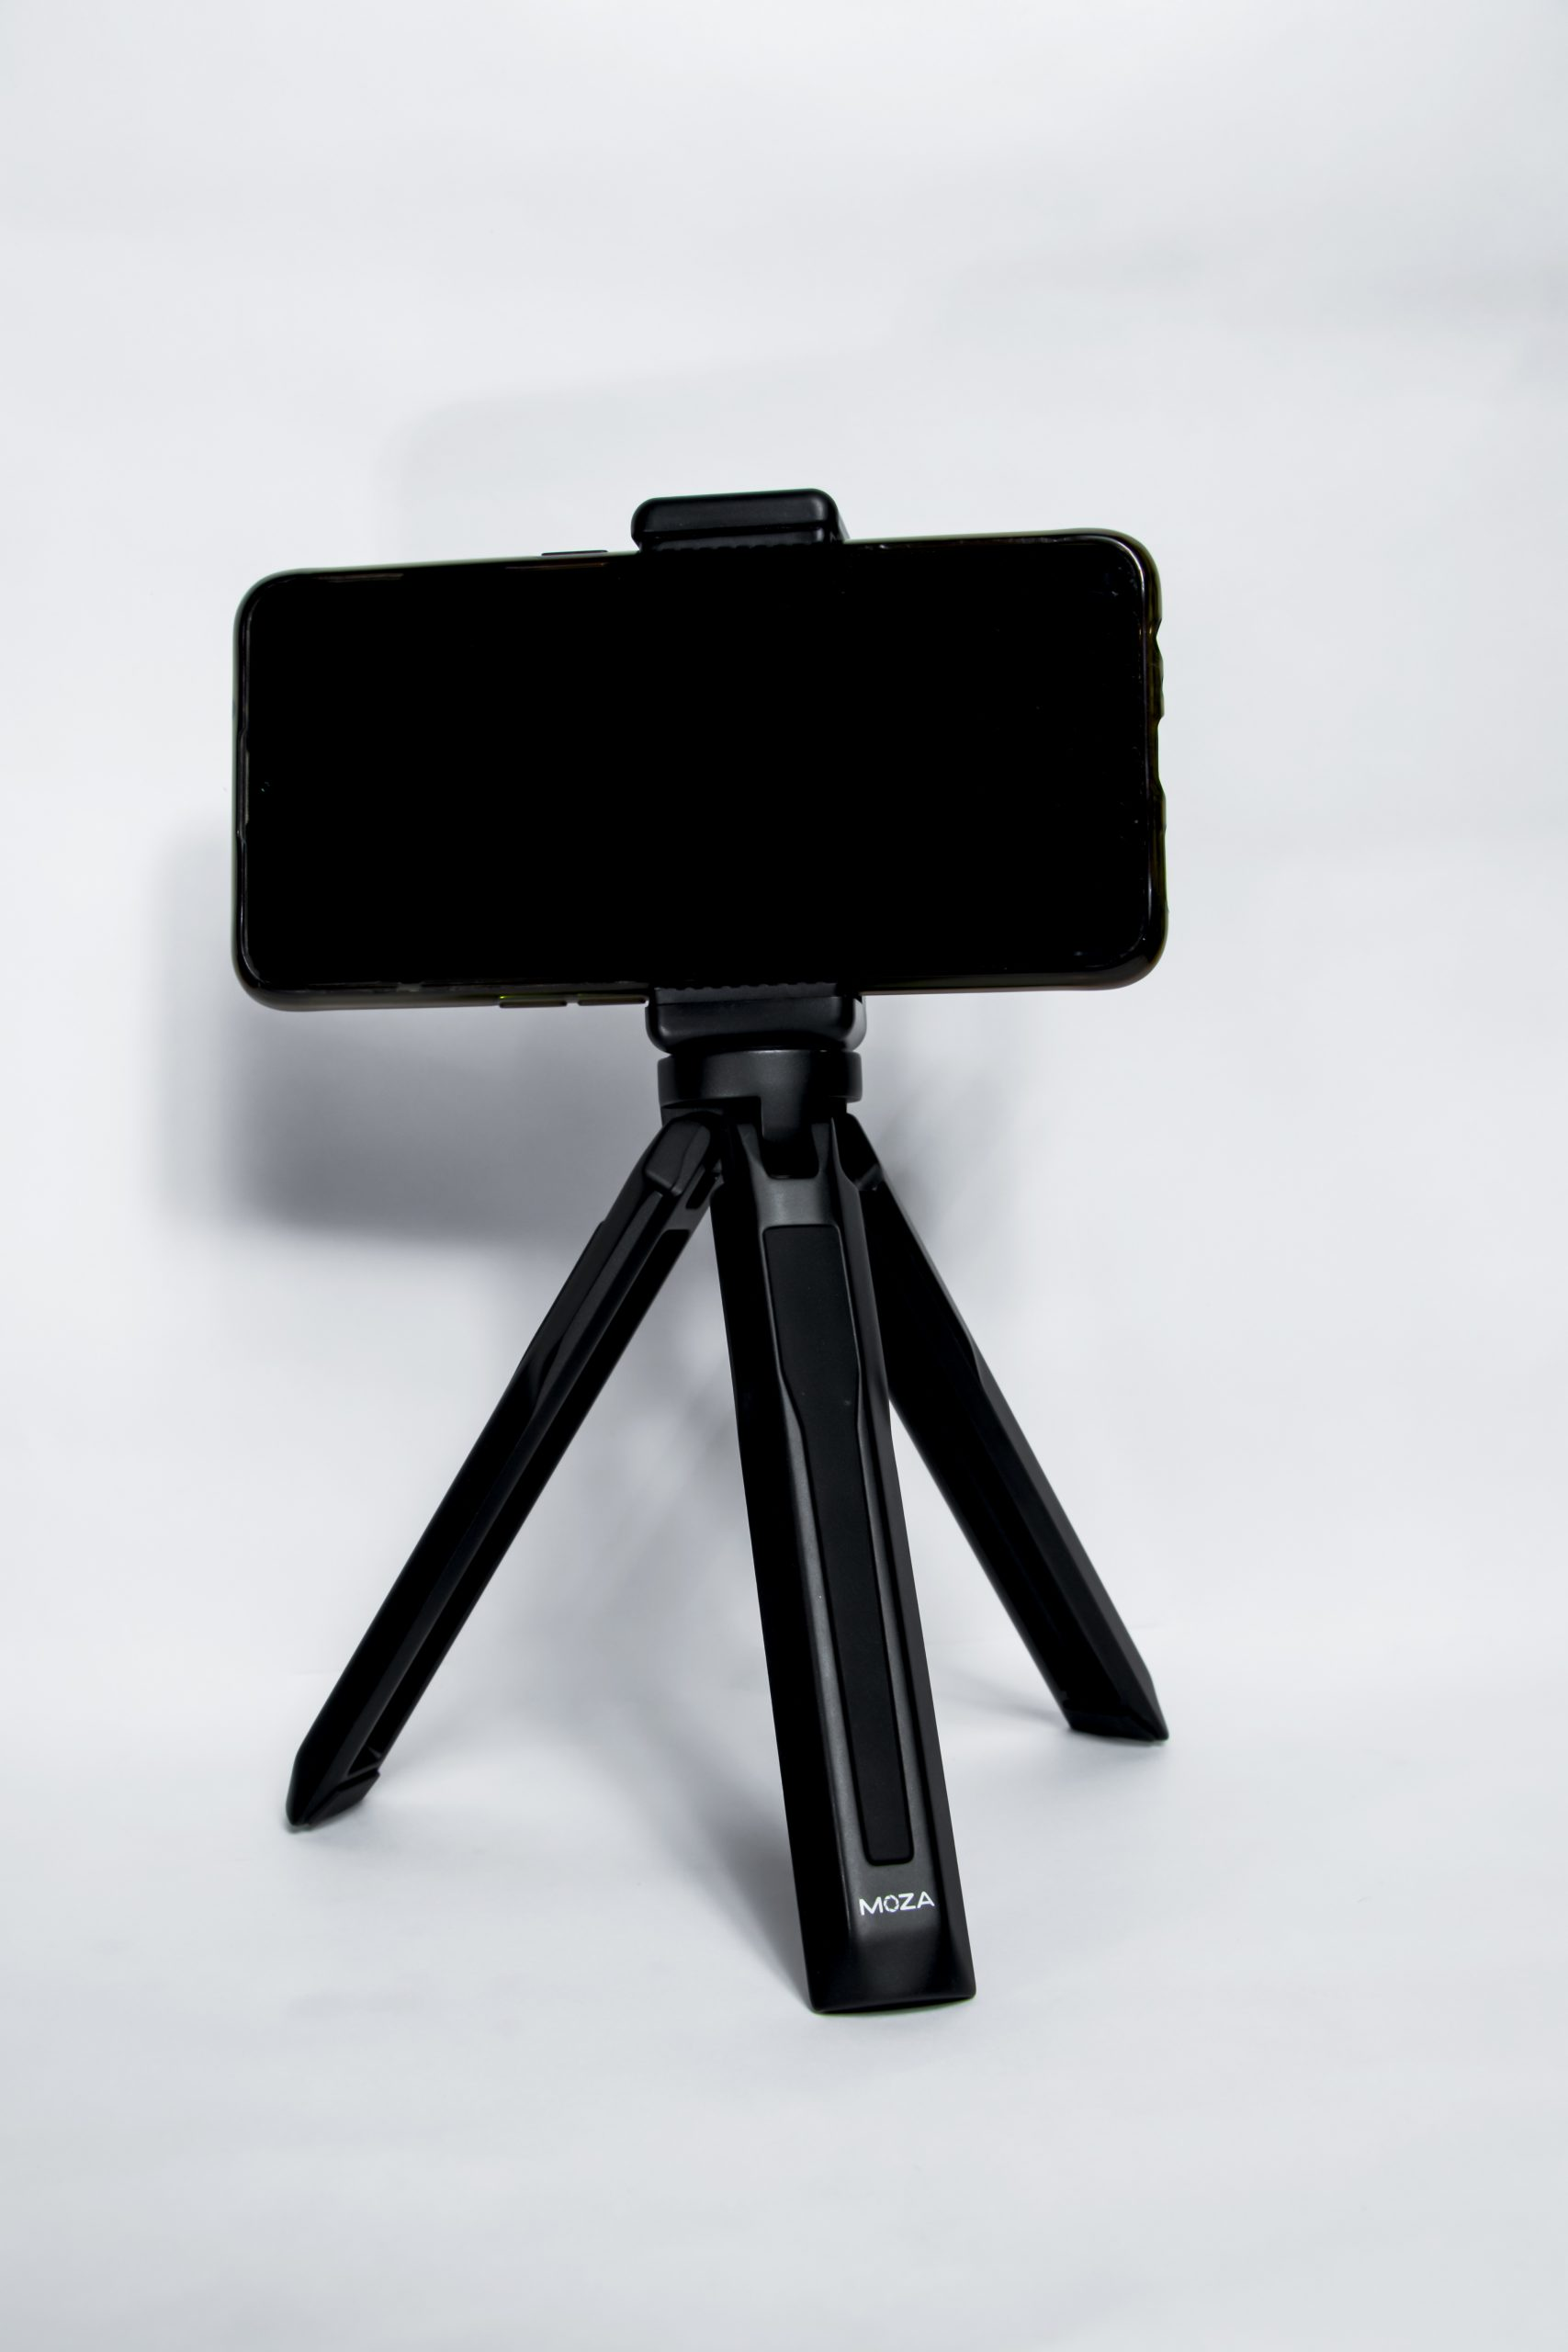 A tripod stand for mobile